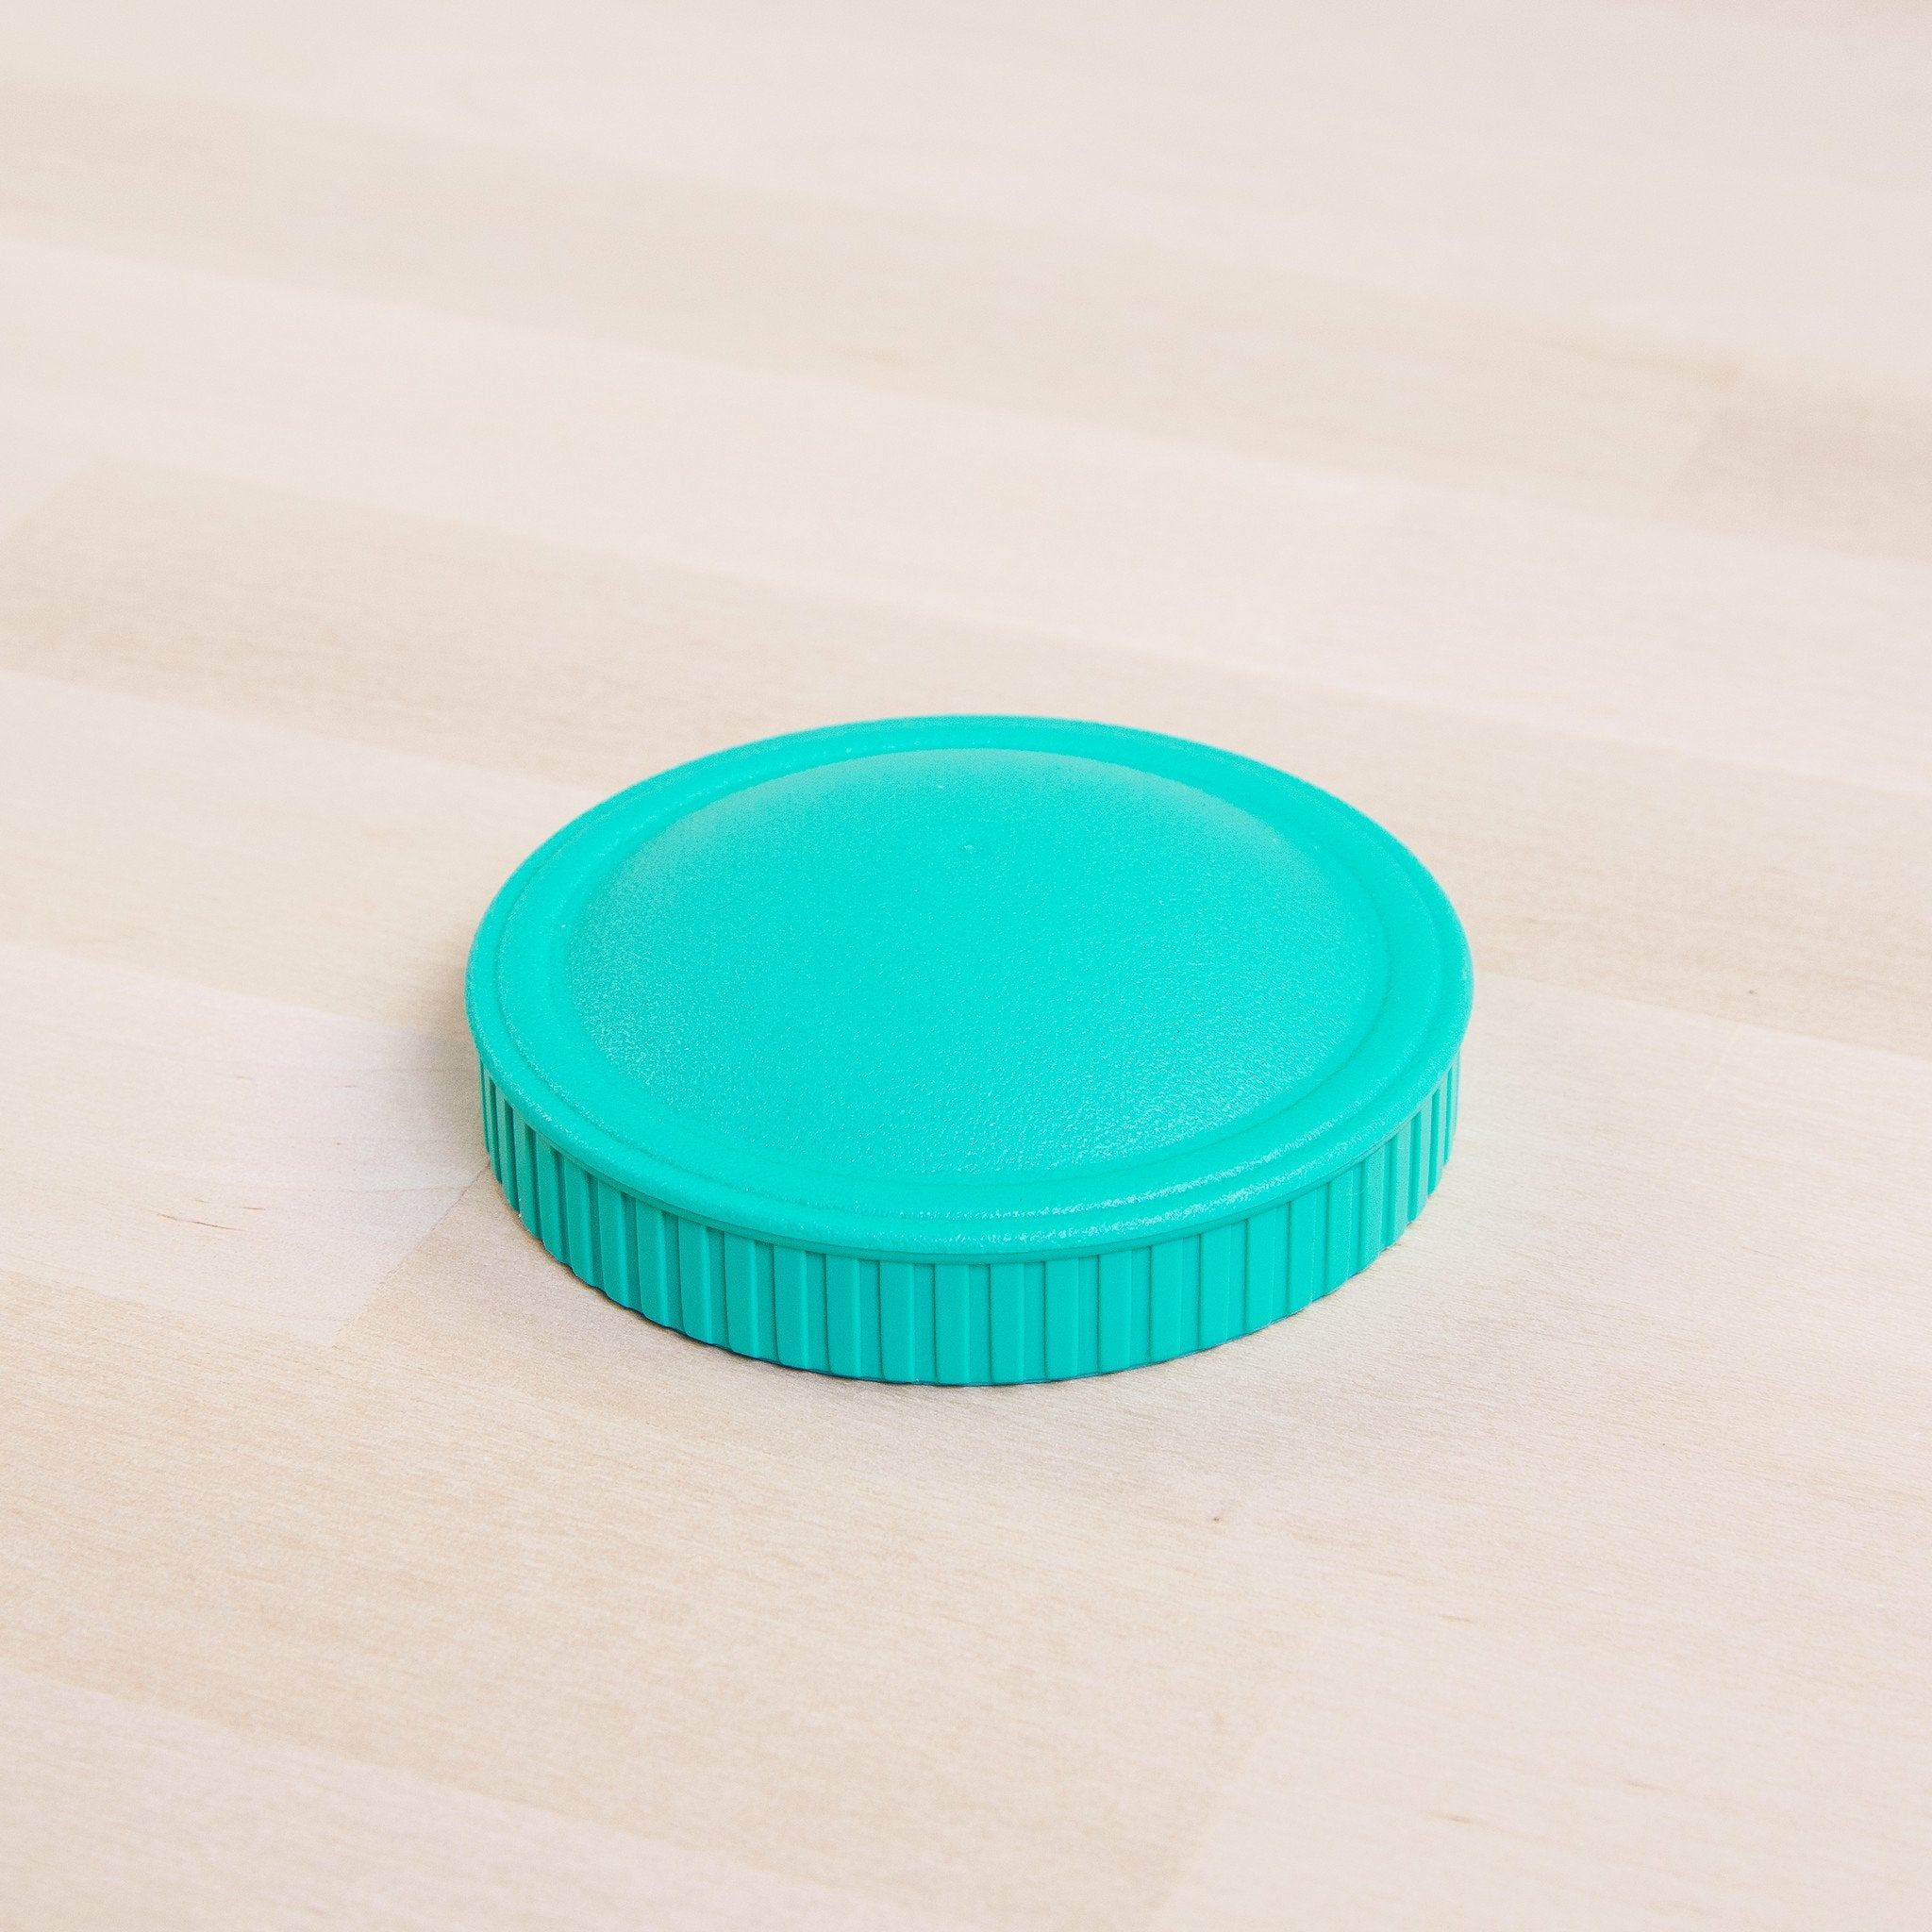 Replay Spare Snack Stack Lids Replay Dinnerware Aqua at Little Earth Nest Eco Shop